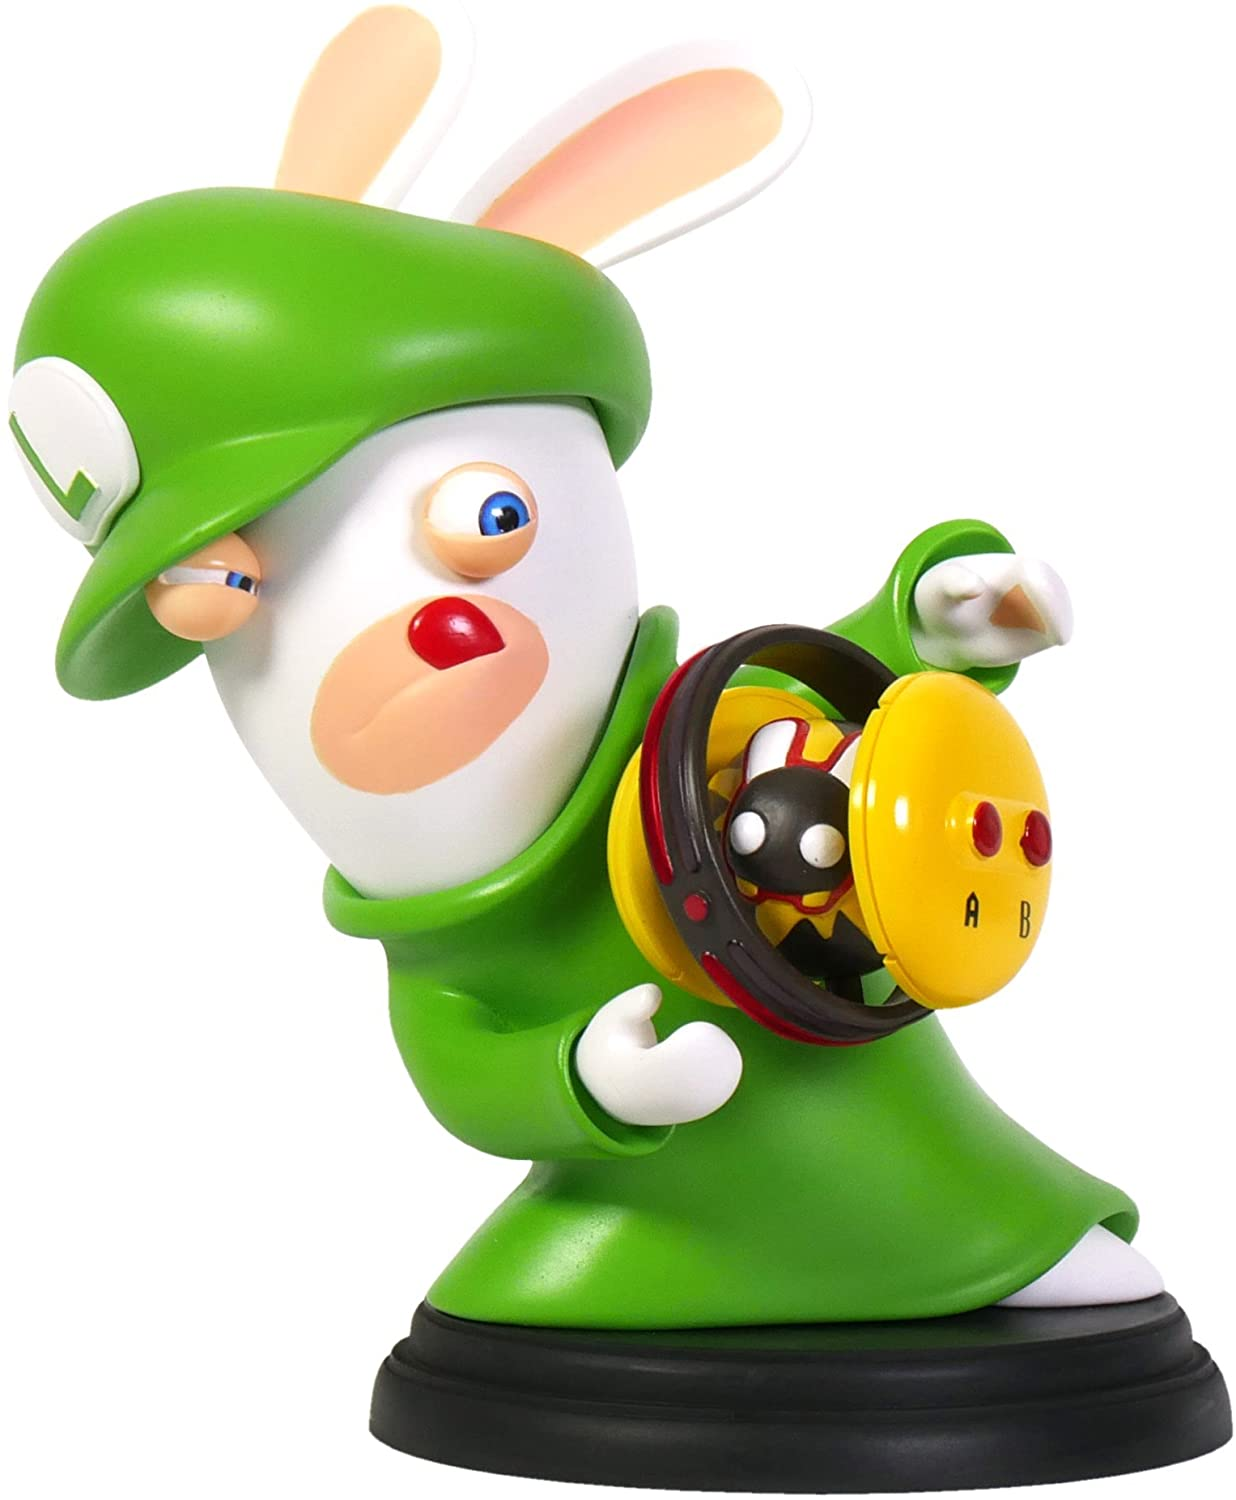 Rabbid Luigi 3'' Figurine - Mario + Rabbids Kingdom Battle